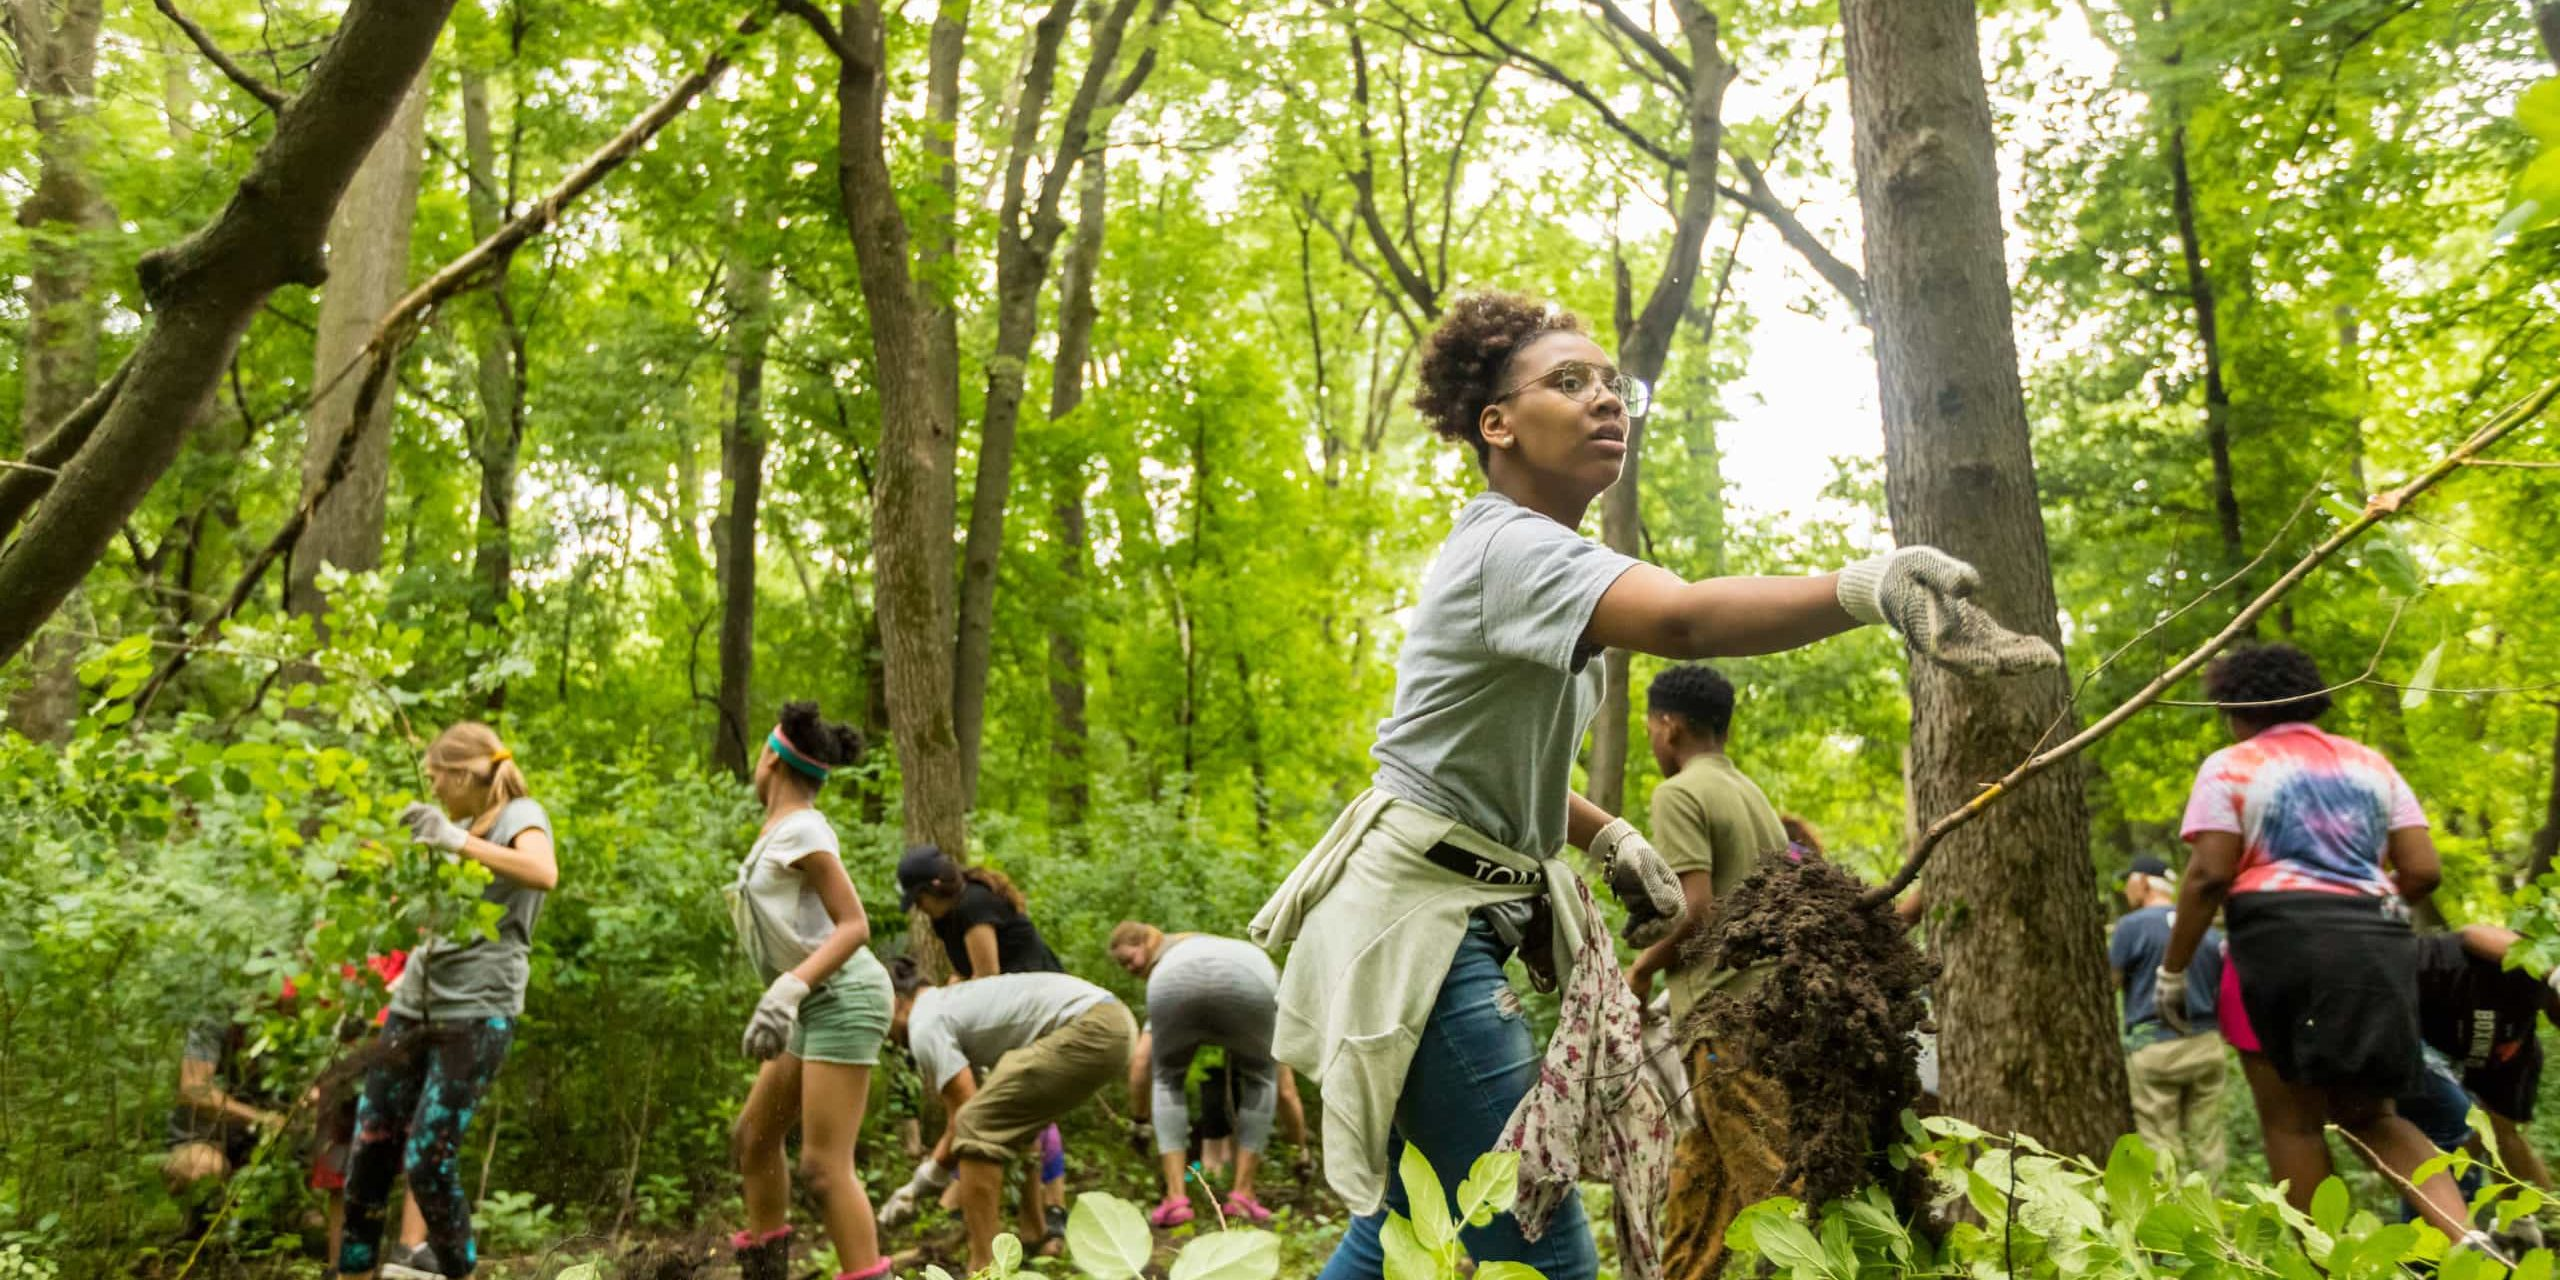 YMCA students canoeing and exploring the woods along Mississippi River¶2019 Annual Report option - Youth Careers